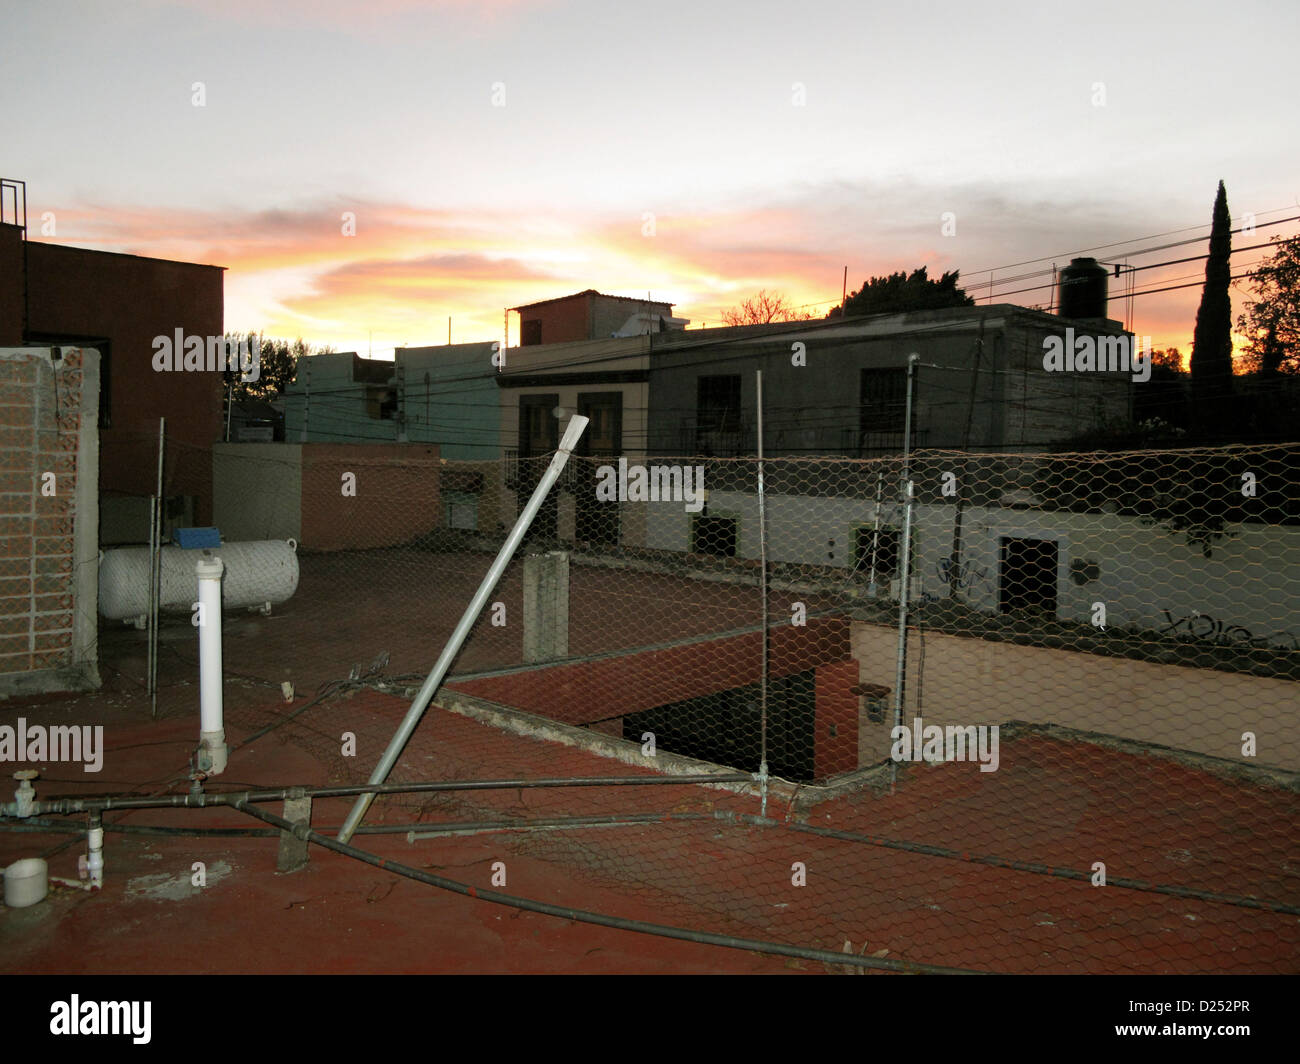 ordinary utilitarian rooftop in Oaxaca de Juarez at dusk with superb view of lingering sunset colors outlined buildings - Stock Image